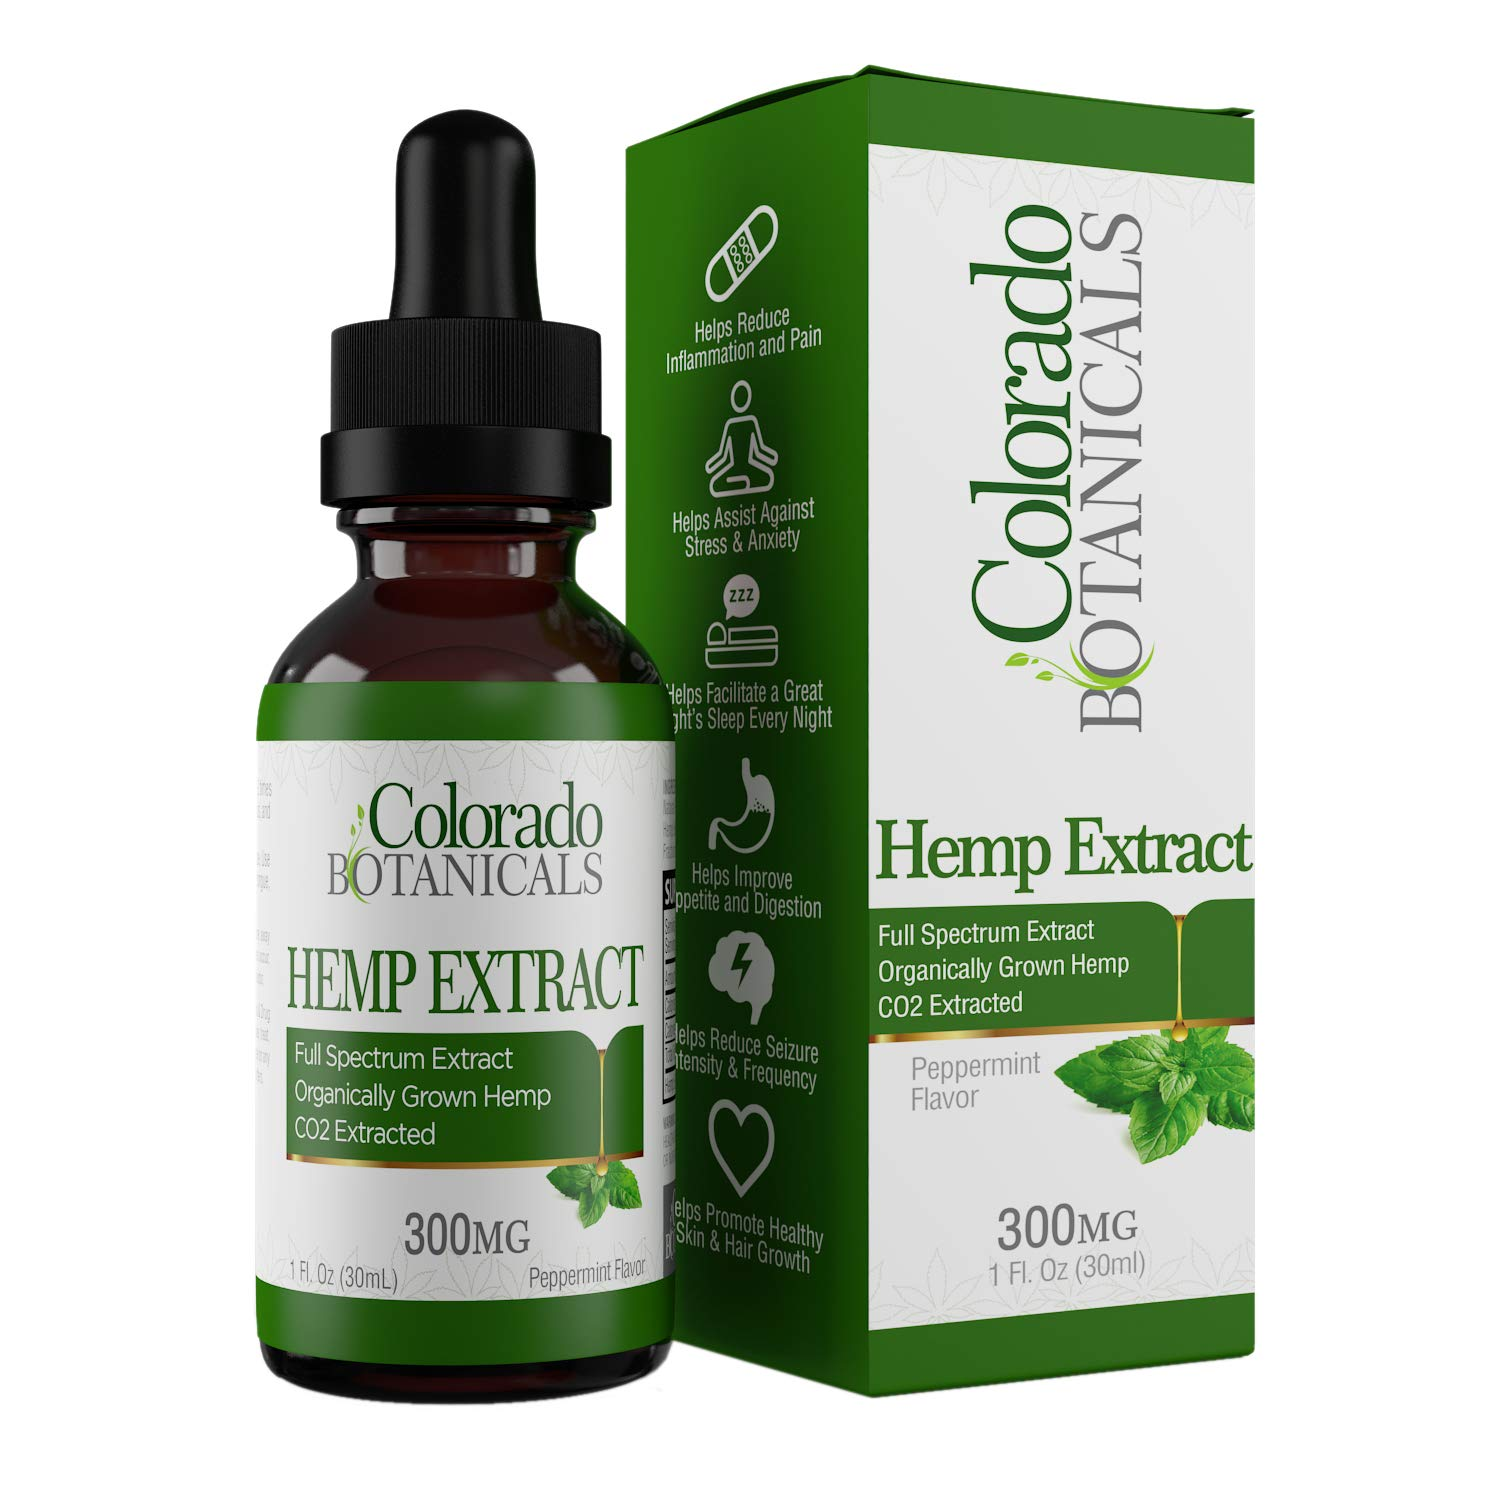 Amazon.com: Full Spectrum Hemp Oil - 300mg 1oz - Natural Hemp Extract with 0% THC | Pure Organic | Relief for Depression, Anxiety, Stress, Sleep, ...